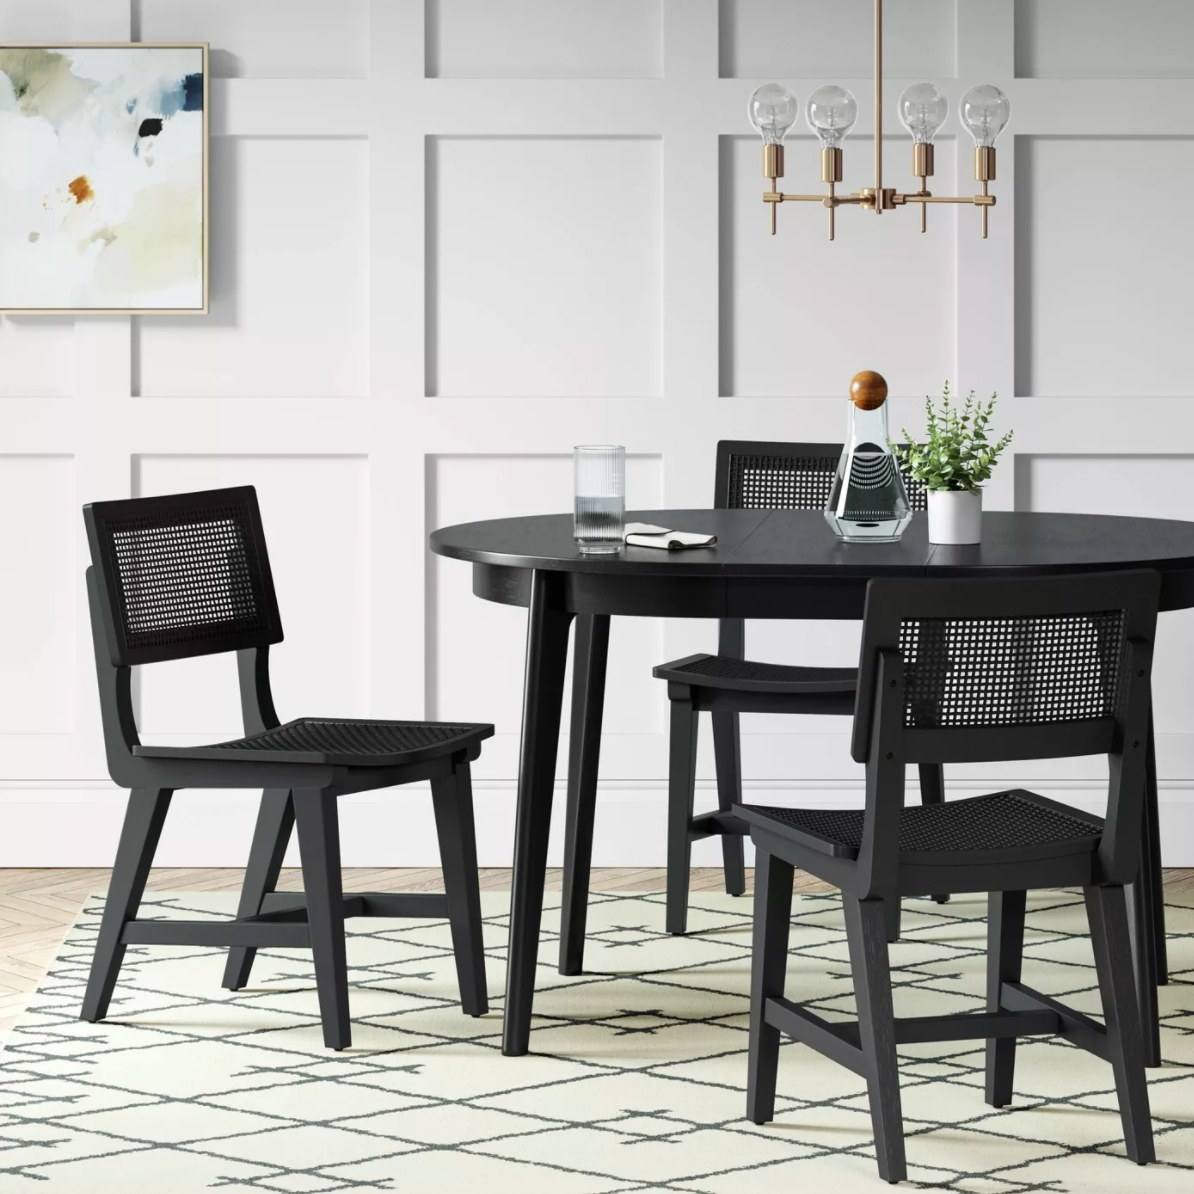 The midcentury round extendable dining table in black